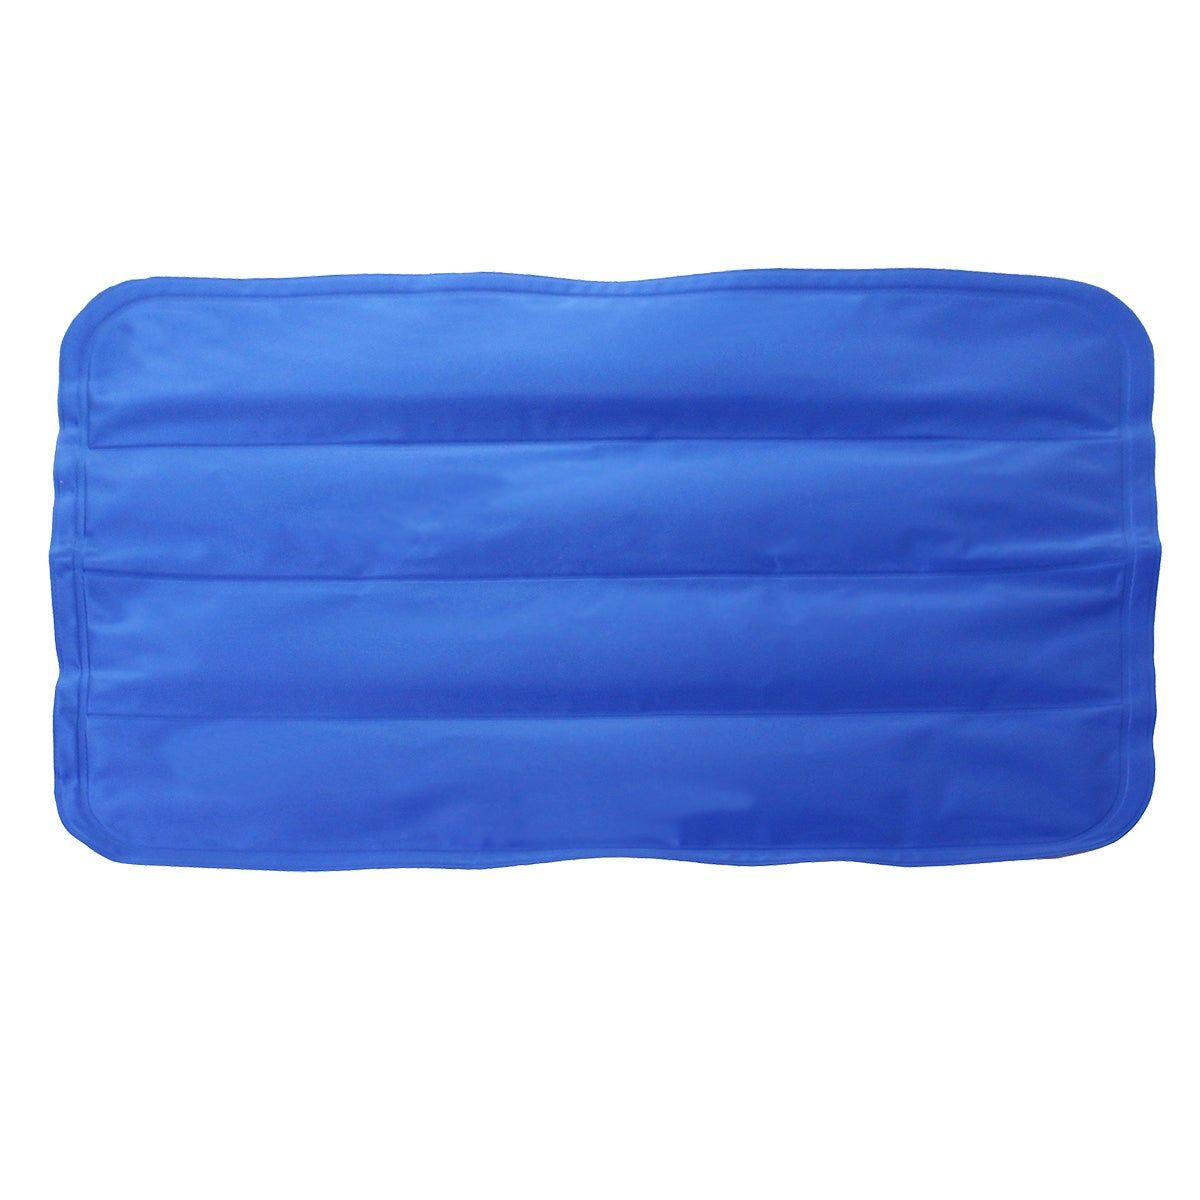 Shop As Seen On Tv Cooling Chill Pillow Pad On Sale Overstock